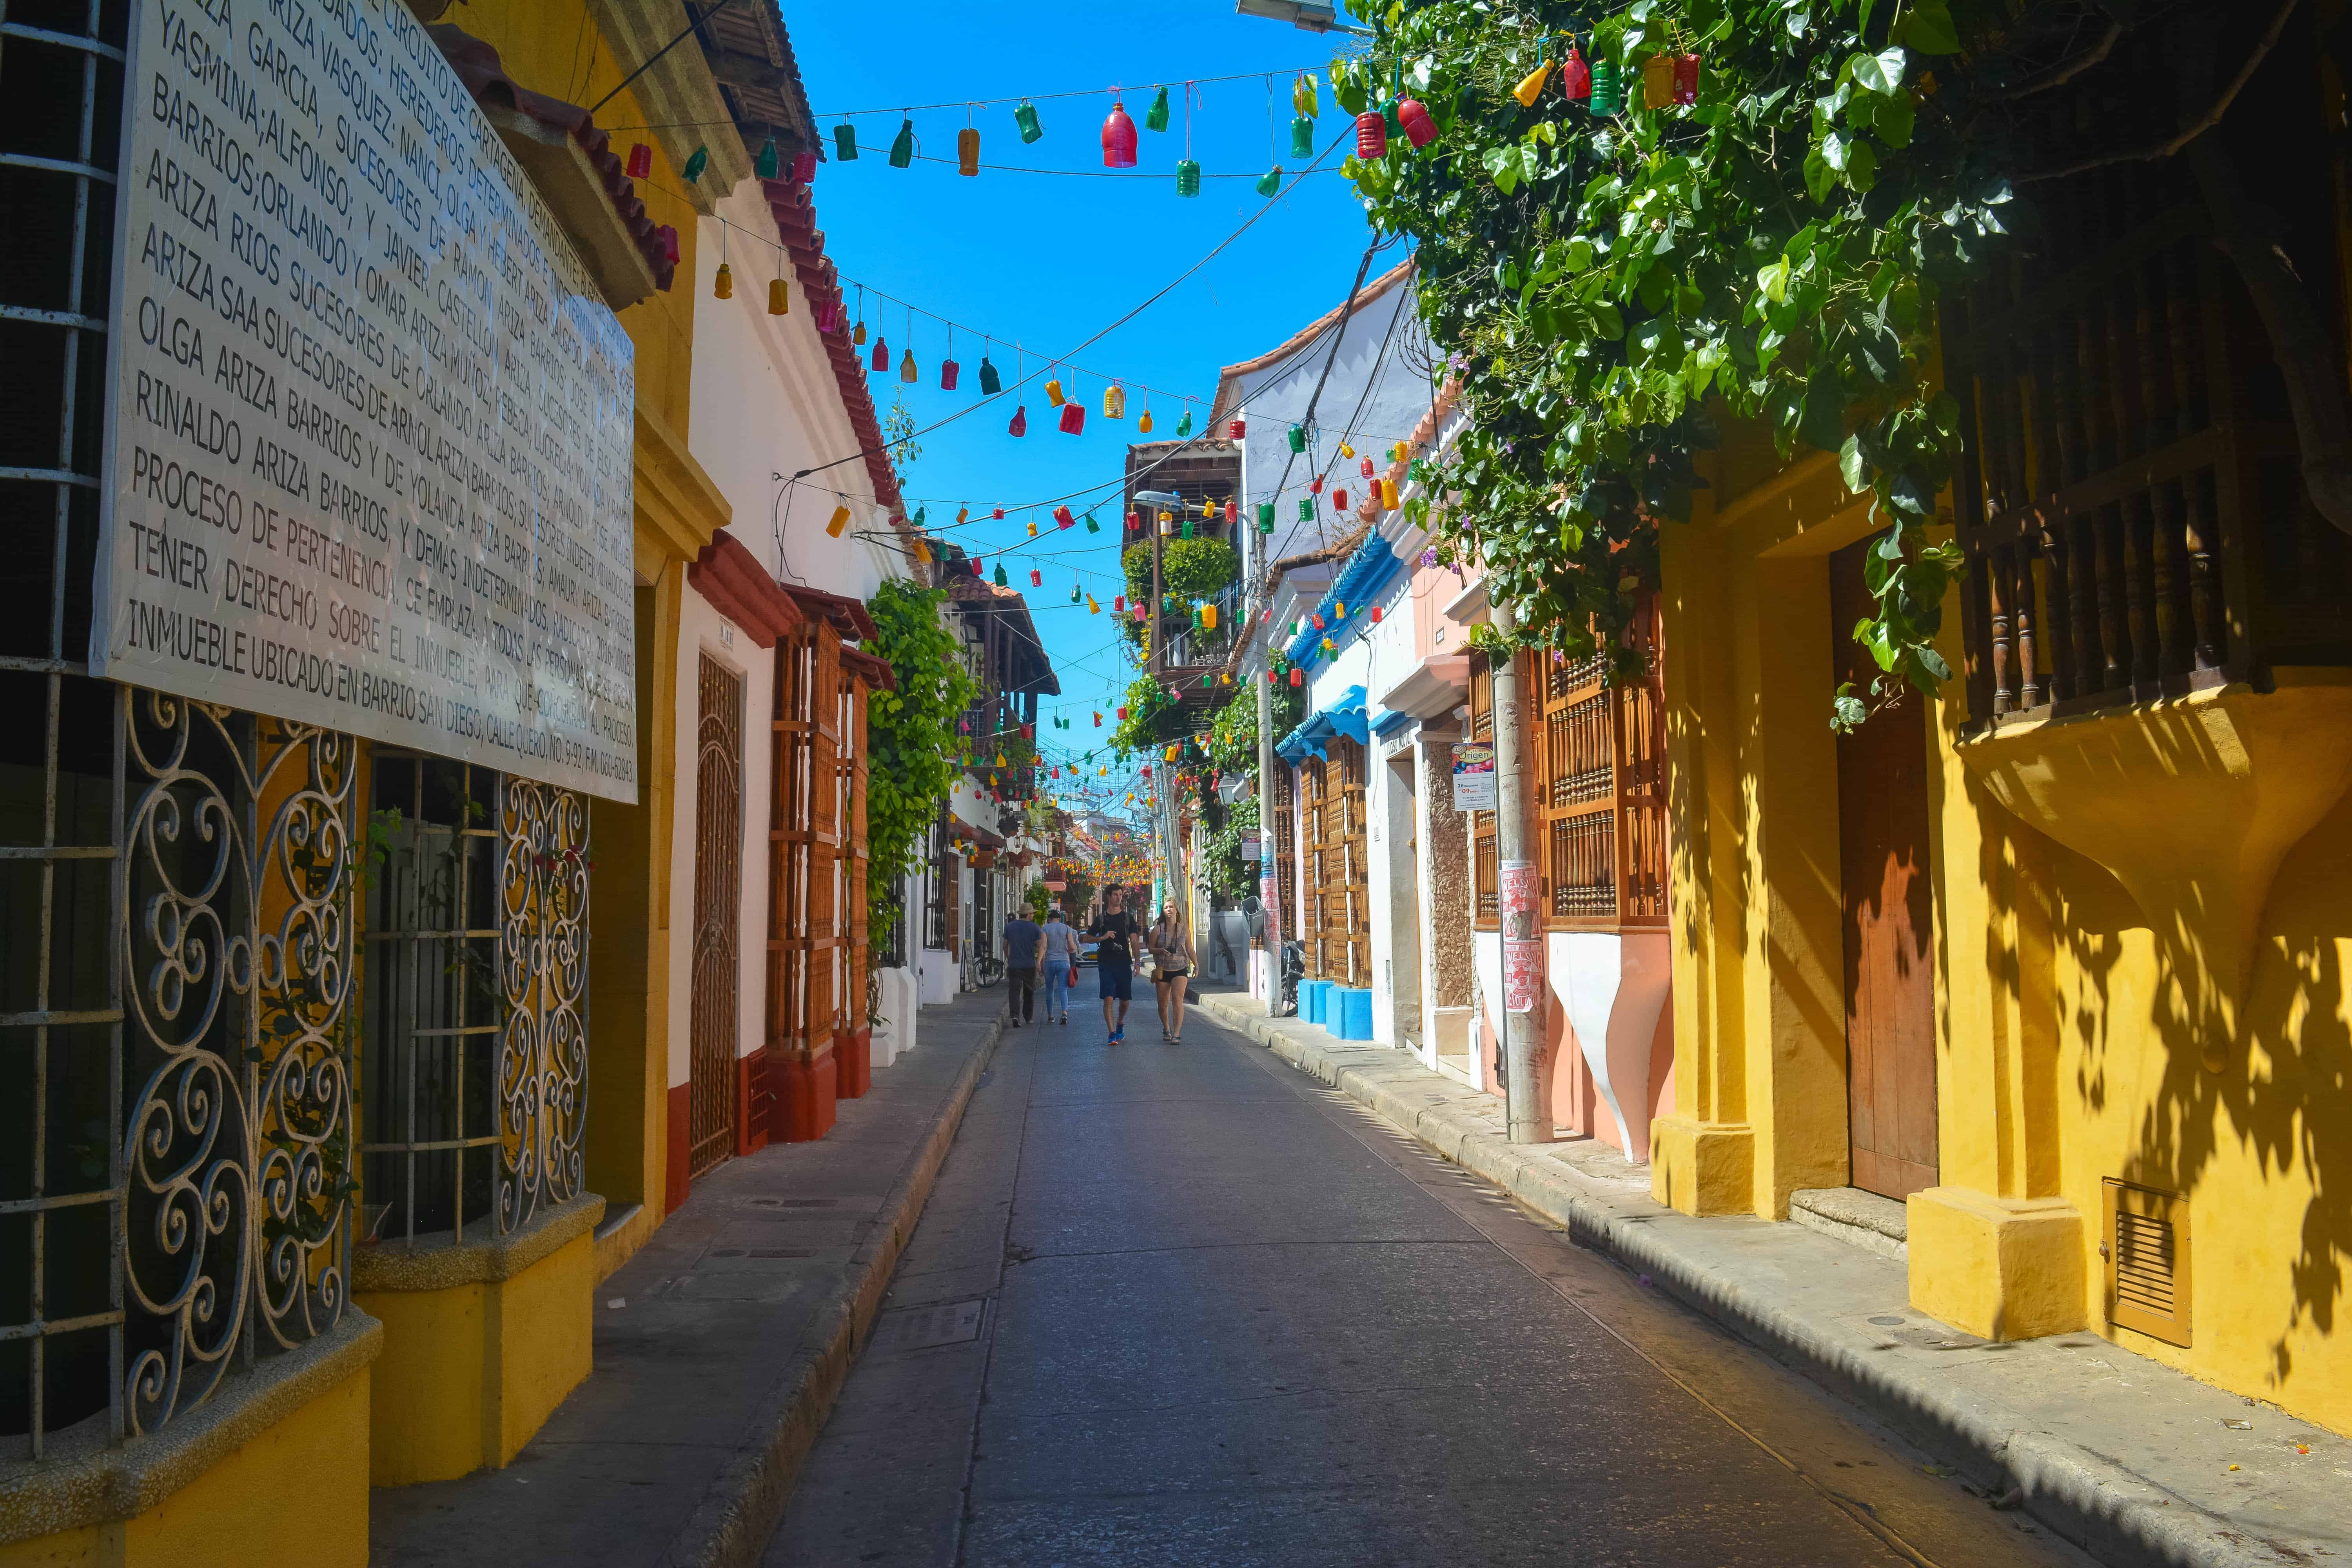 Get lost in the streets of Old Cartagena